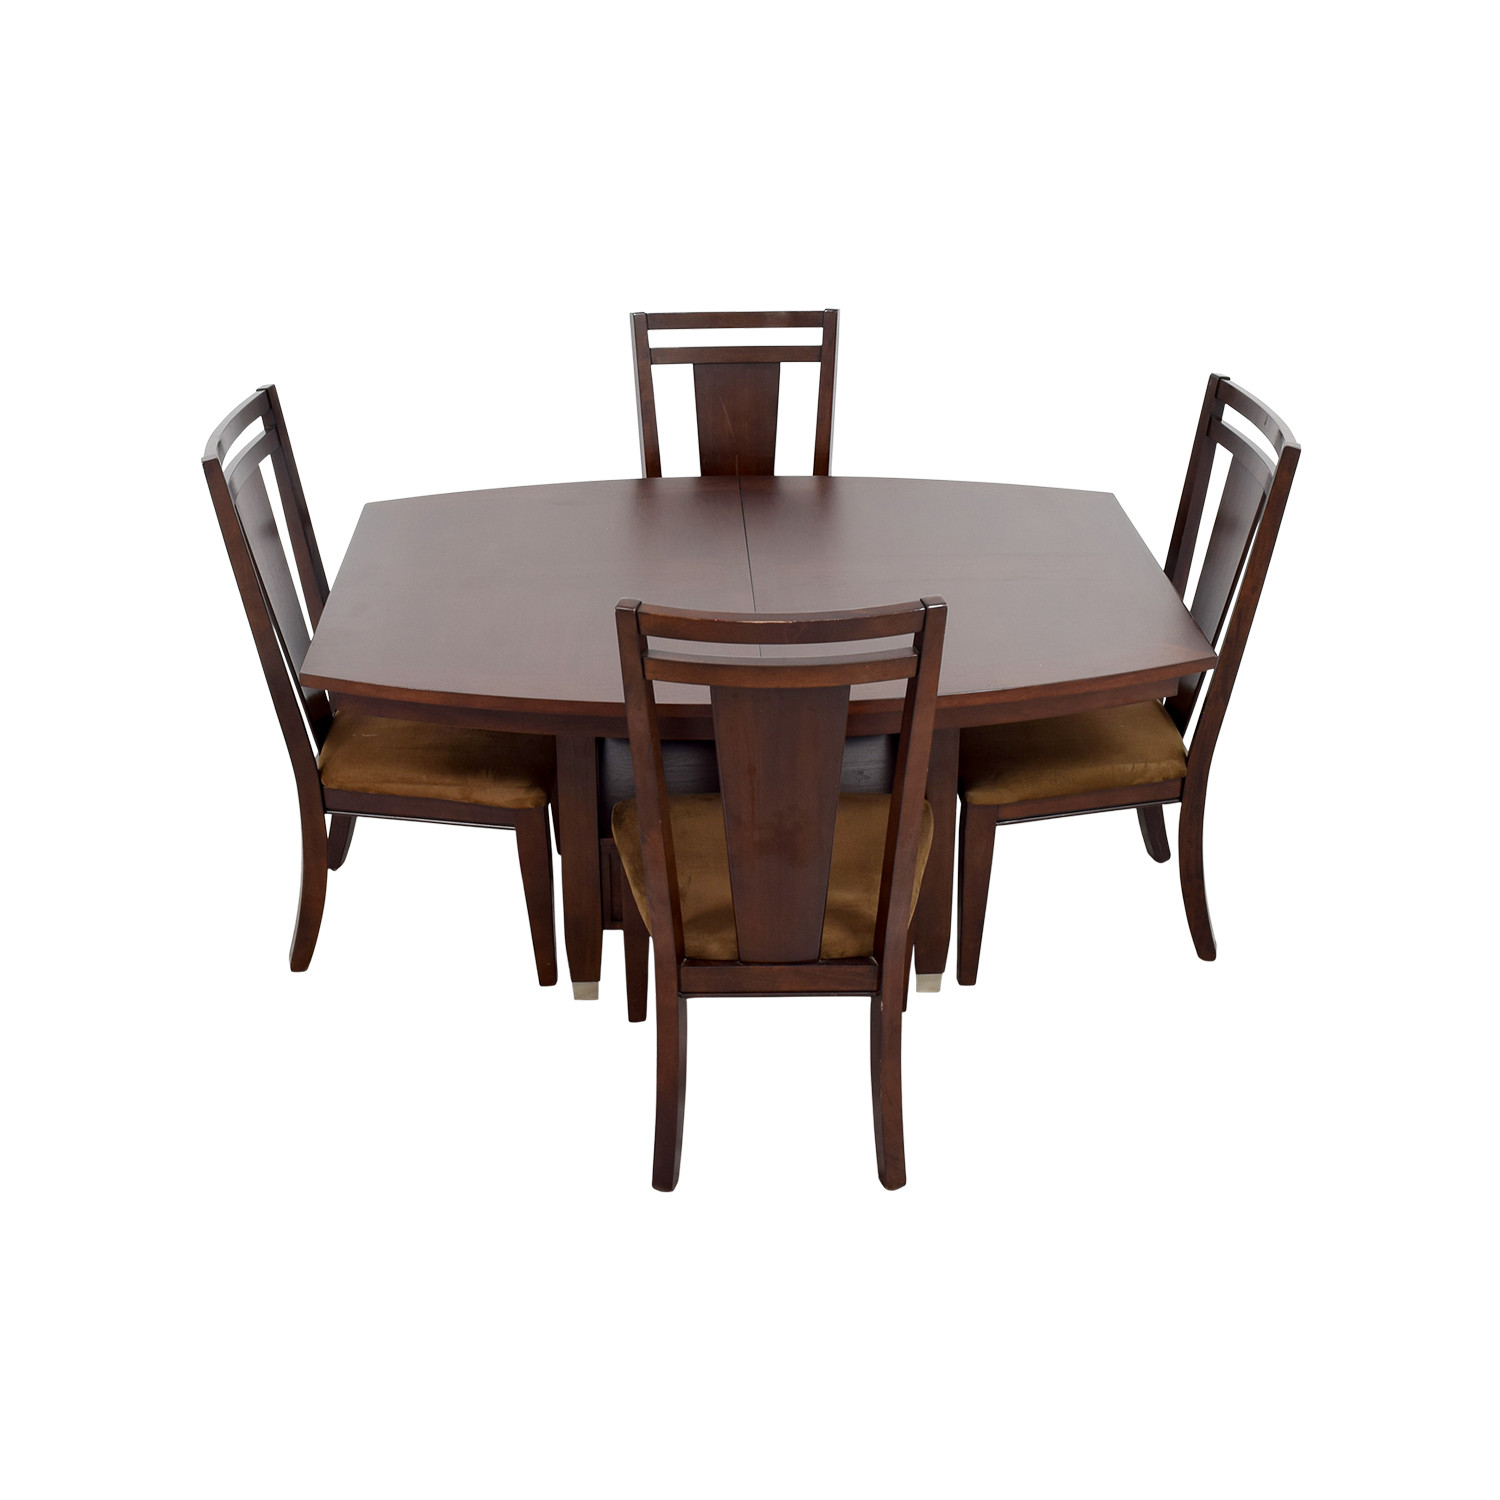 Best ideas about Wood Dining Table Set . Save or Pin OFF Broyhill Broyhill Wood Dining Table Set Tables Now.